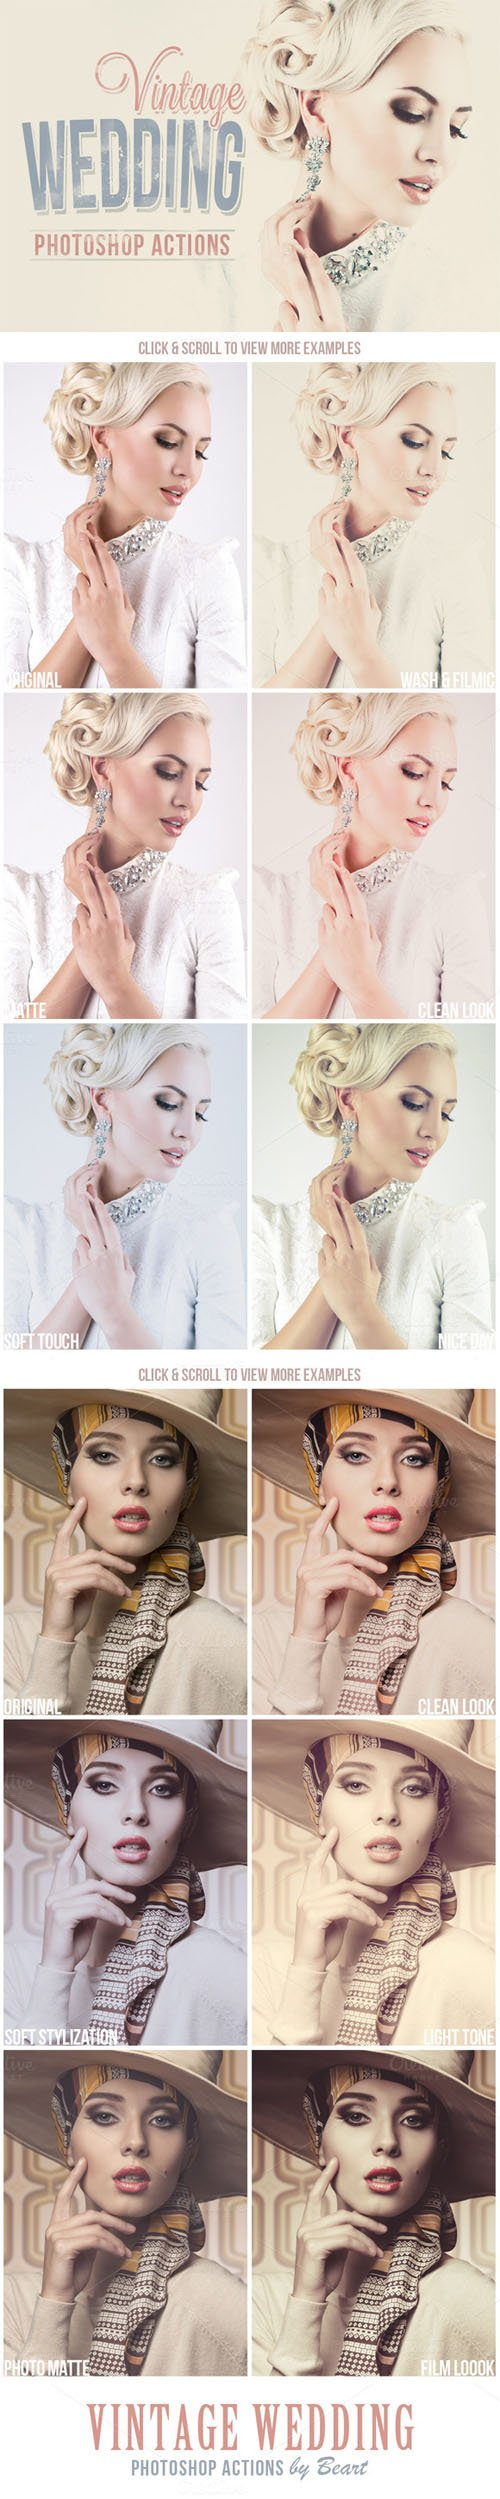 Vintage Wedding Photoshop Actions - CM 153624